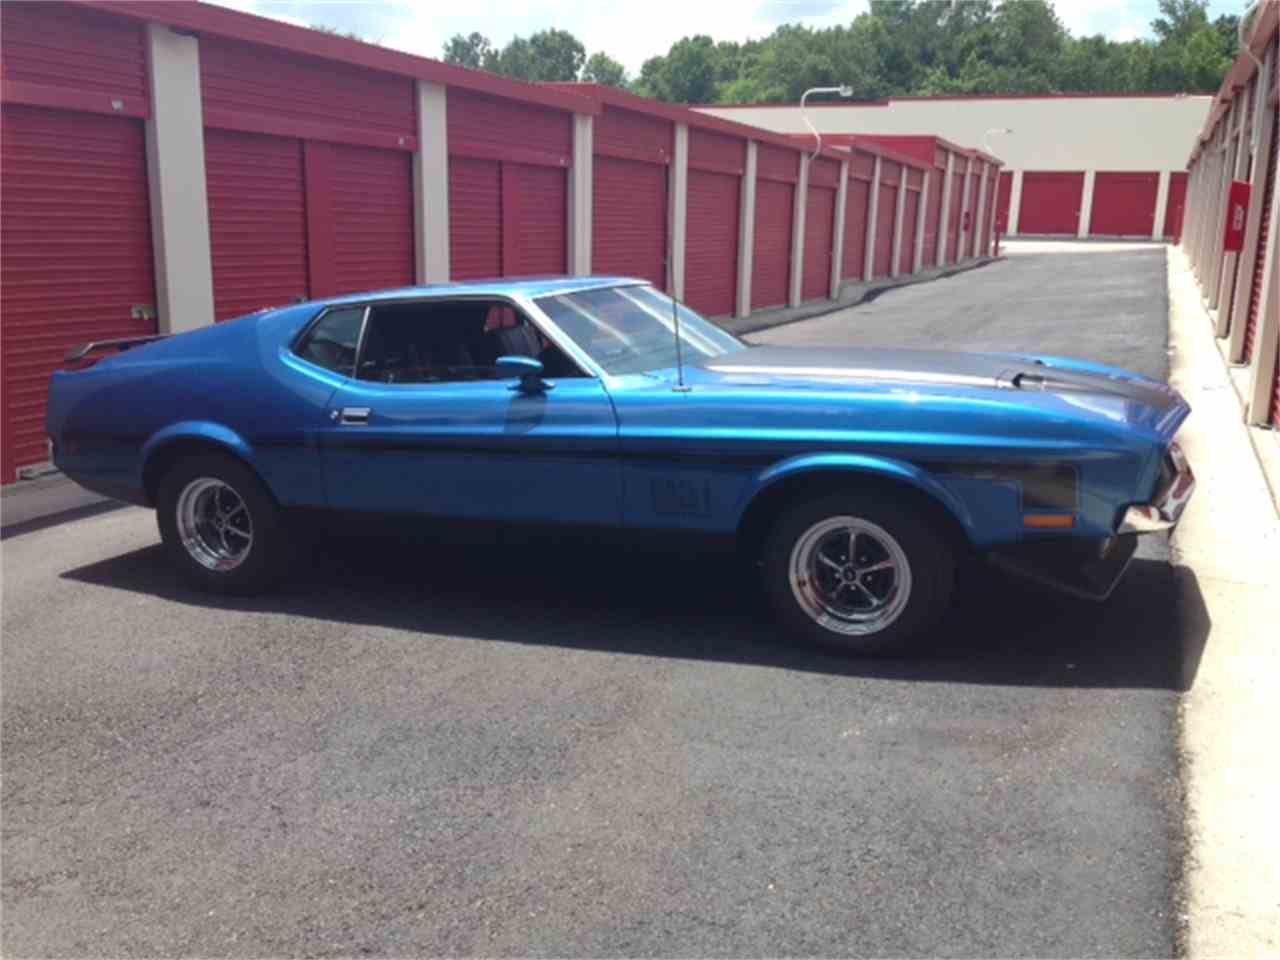 Large Picture of Classic 1972 Ford Mustang located in Alabama Offered by a Private Seller - LFK6